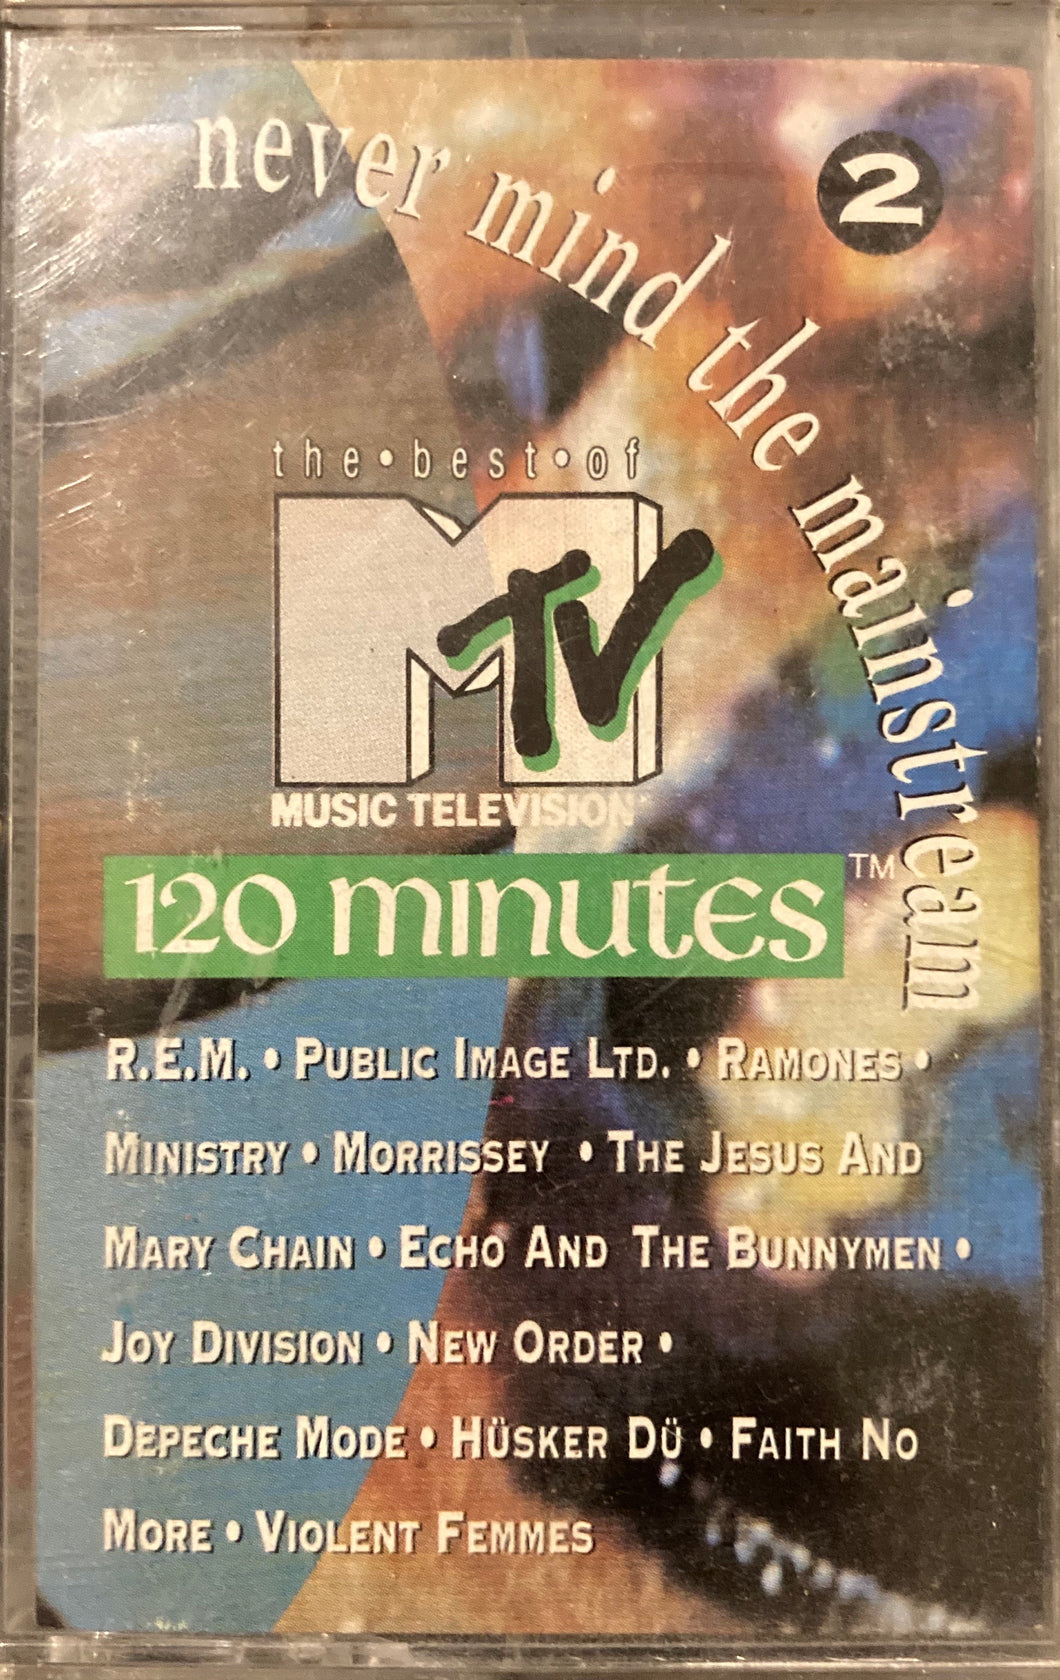 MTV 120 Minutes' Never Mind The Mainstream 2 Compilation Cassette VG